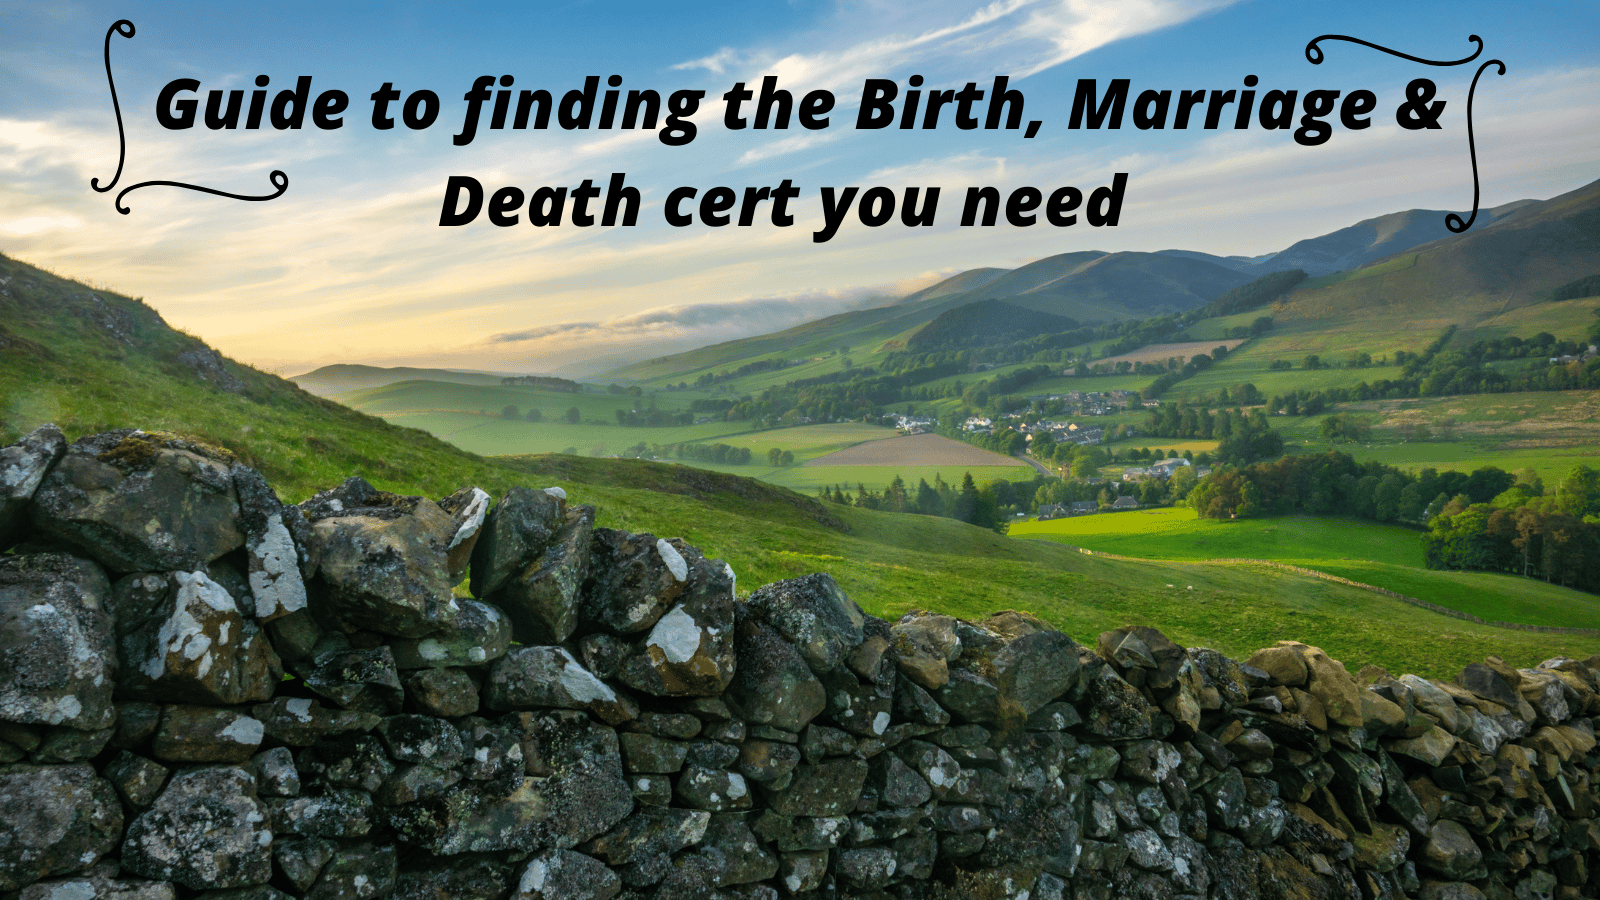 Guide to finding the Birth, Marriage & Death cert you need